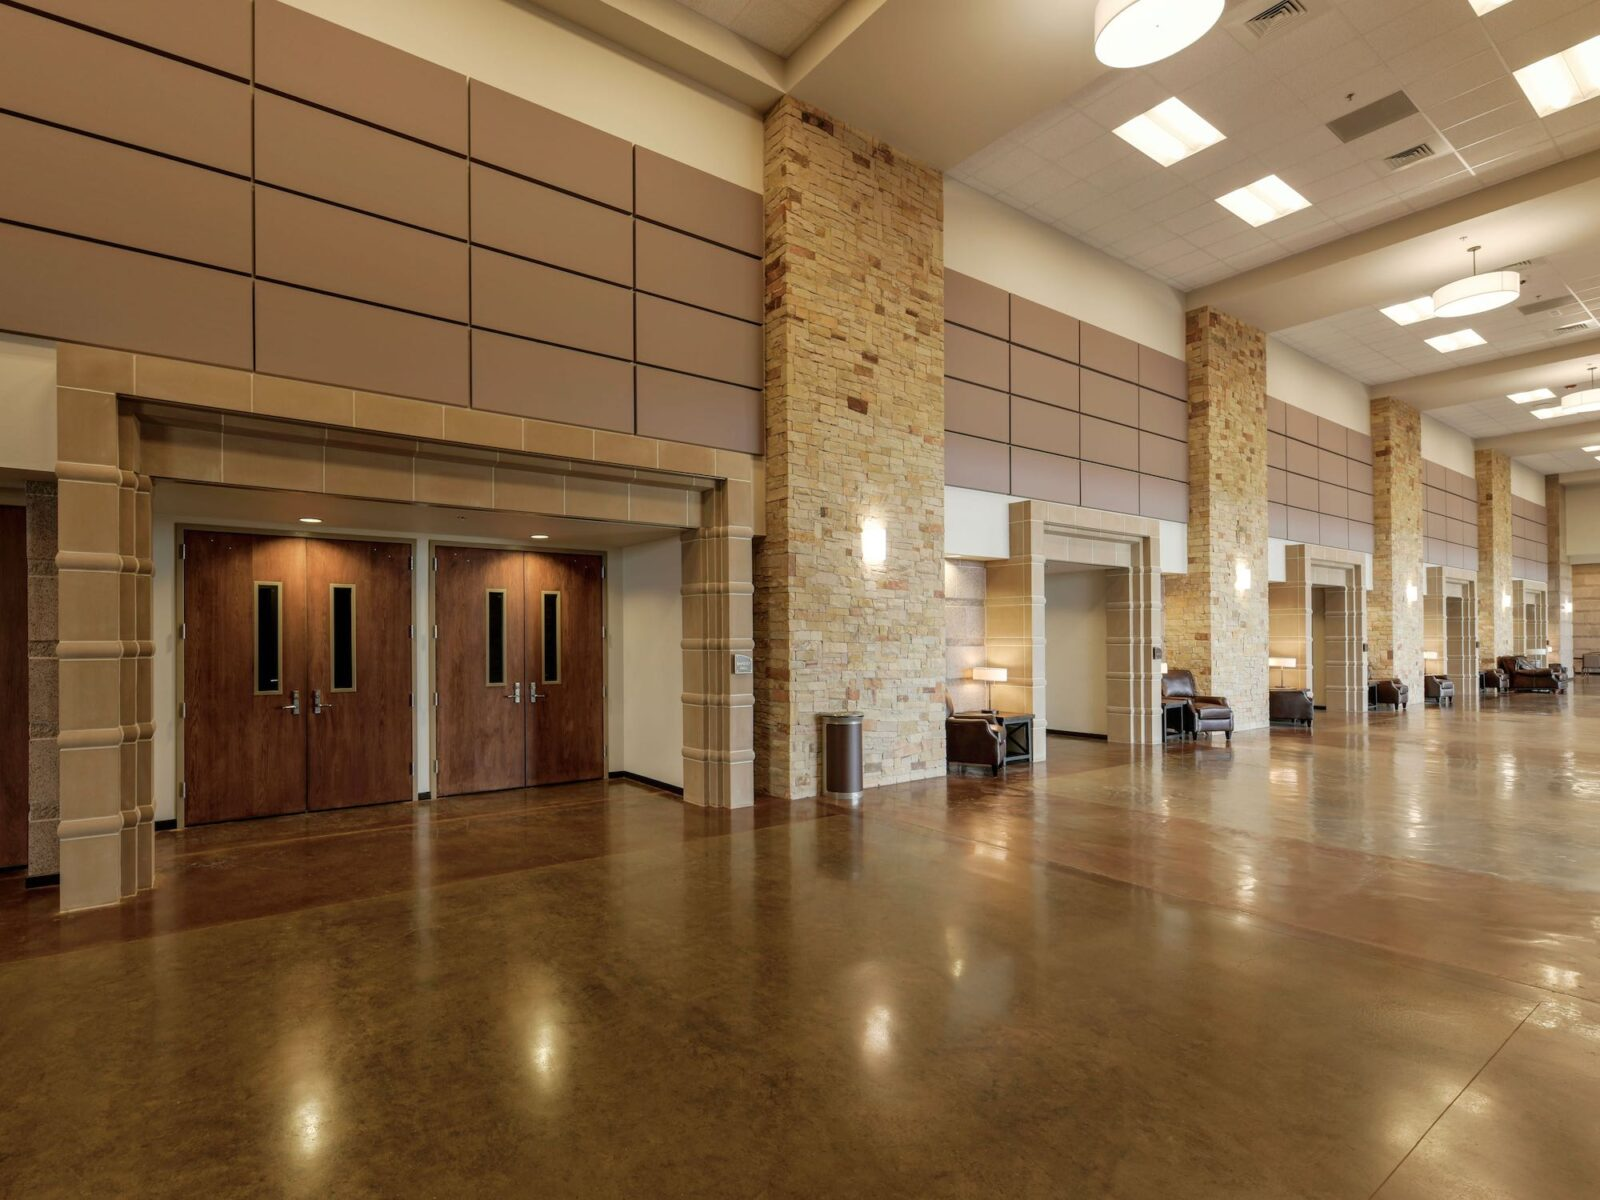 Ward County Event Center - Design Accent using Custom Manufactured Cast Stone - Entryways Surround Trim